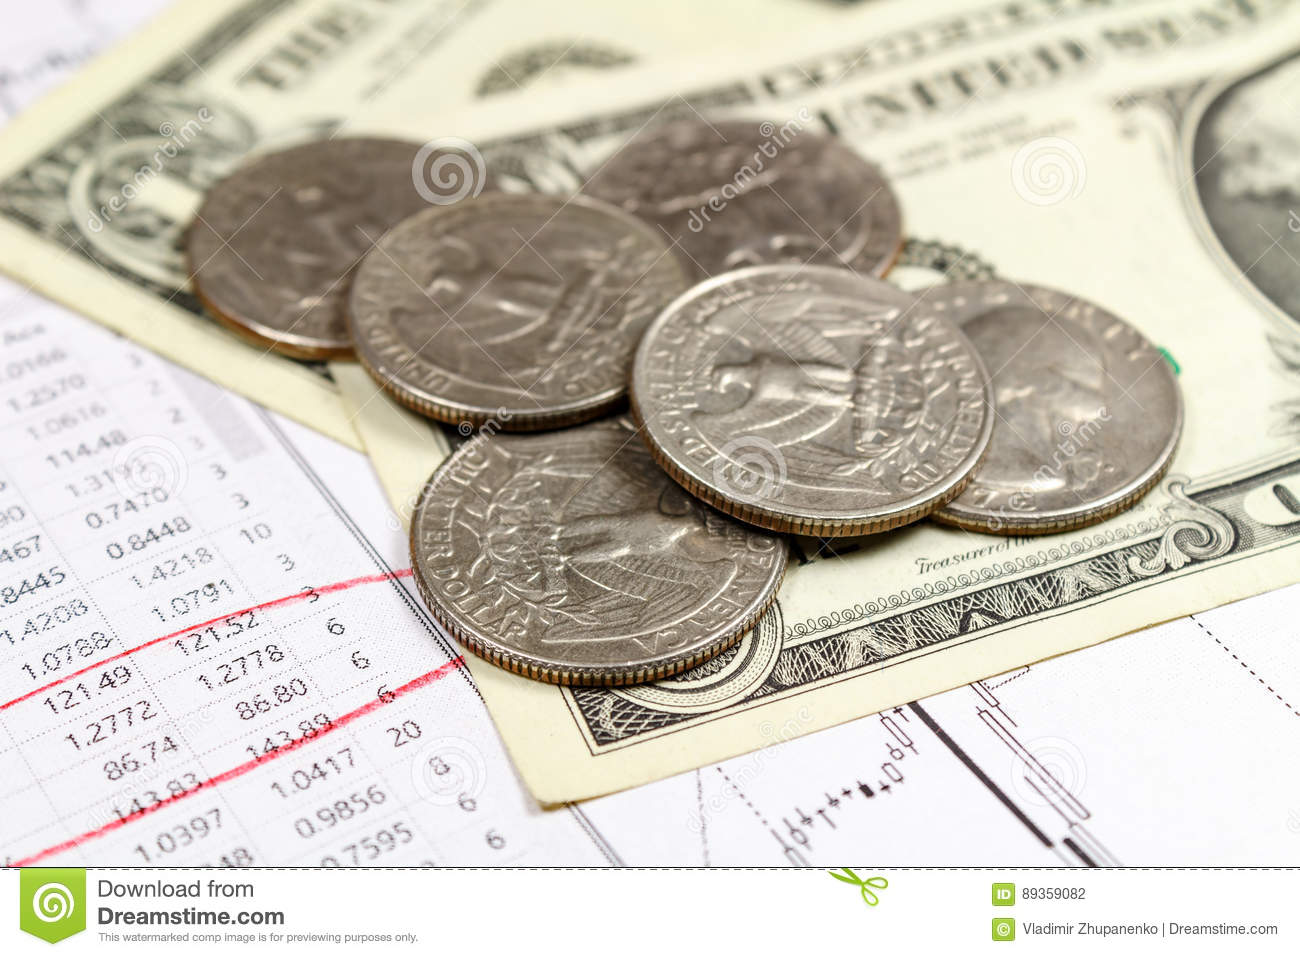 US dollars banknotes with coins on the background of currency growth schedule. Focus in the foreground